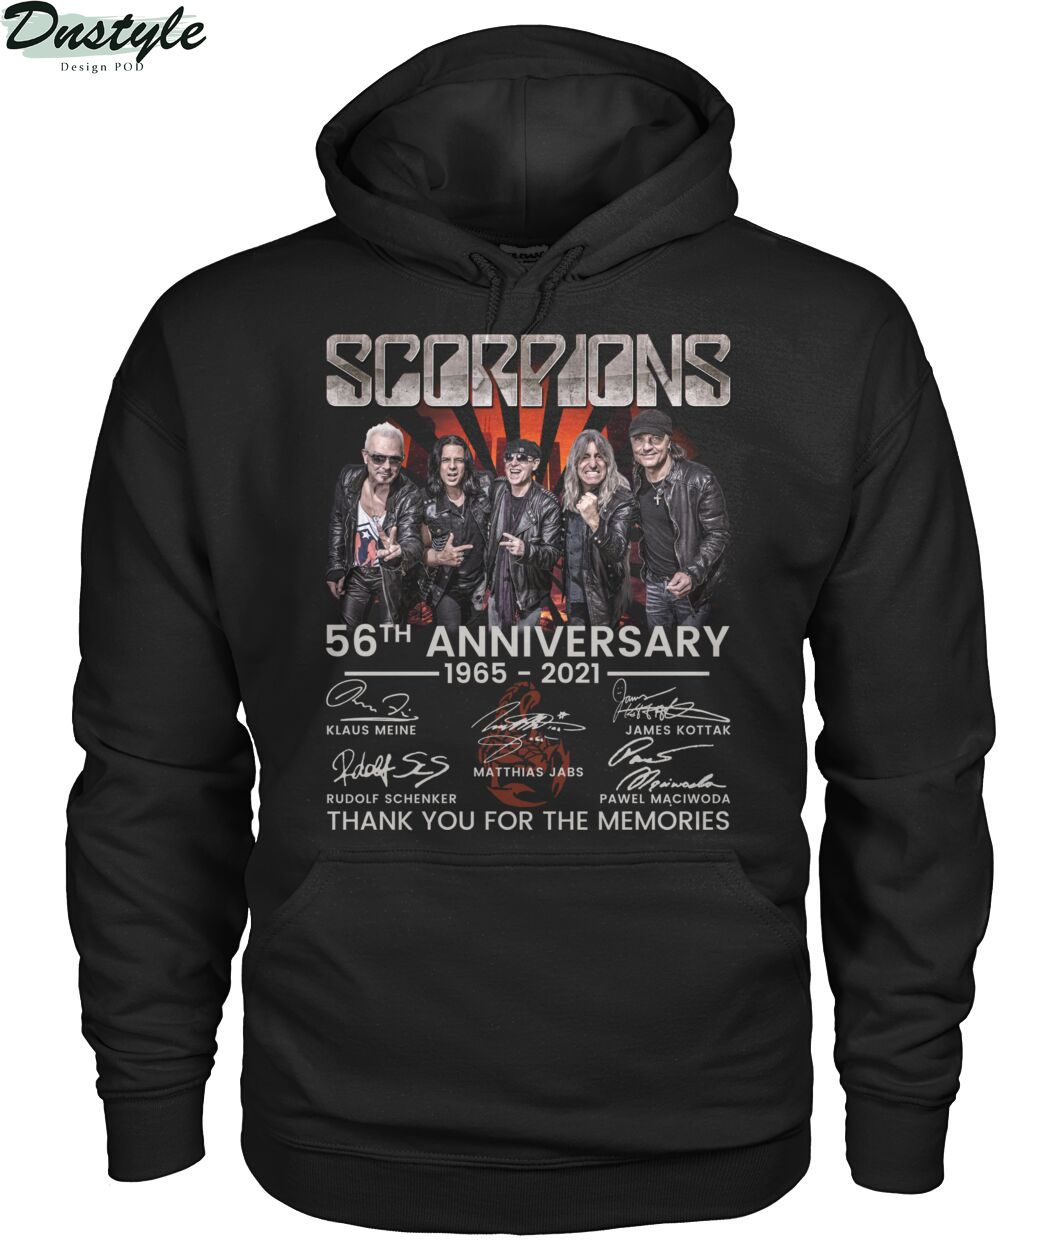 Scoprions 56th anniversary 1965 2021 thank you for the memories hoodie